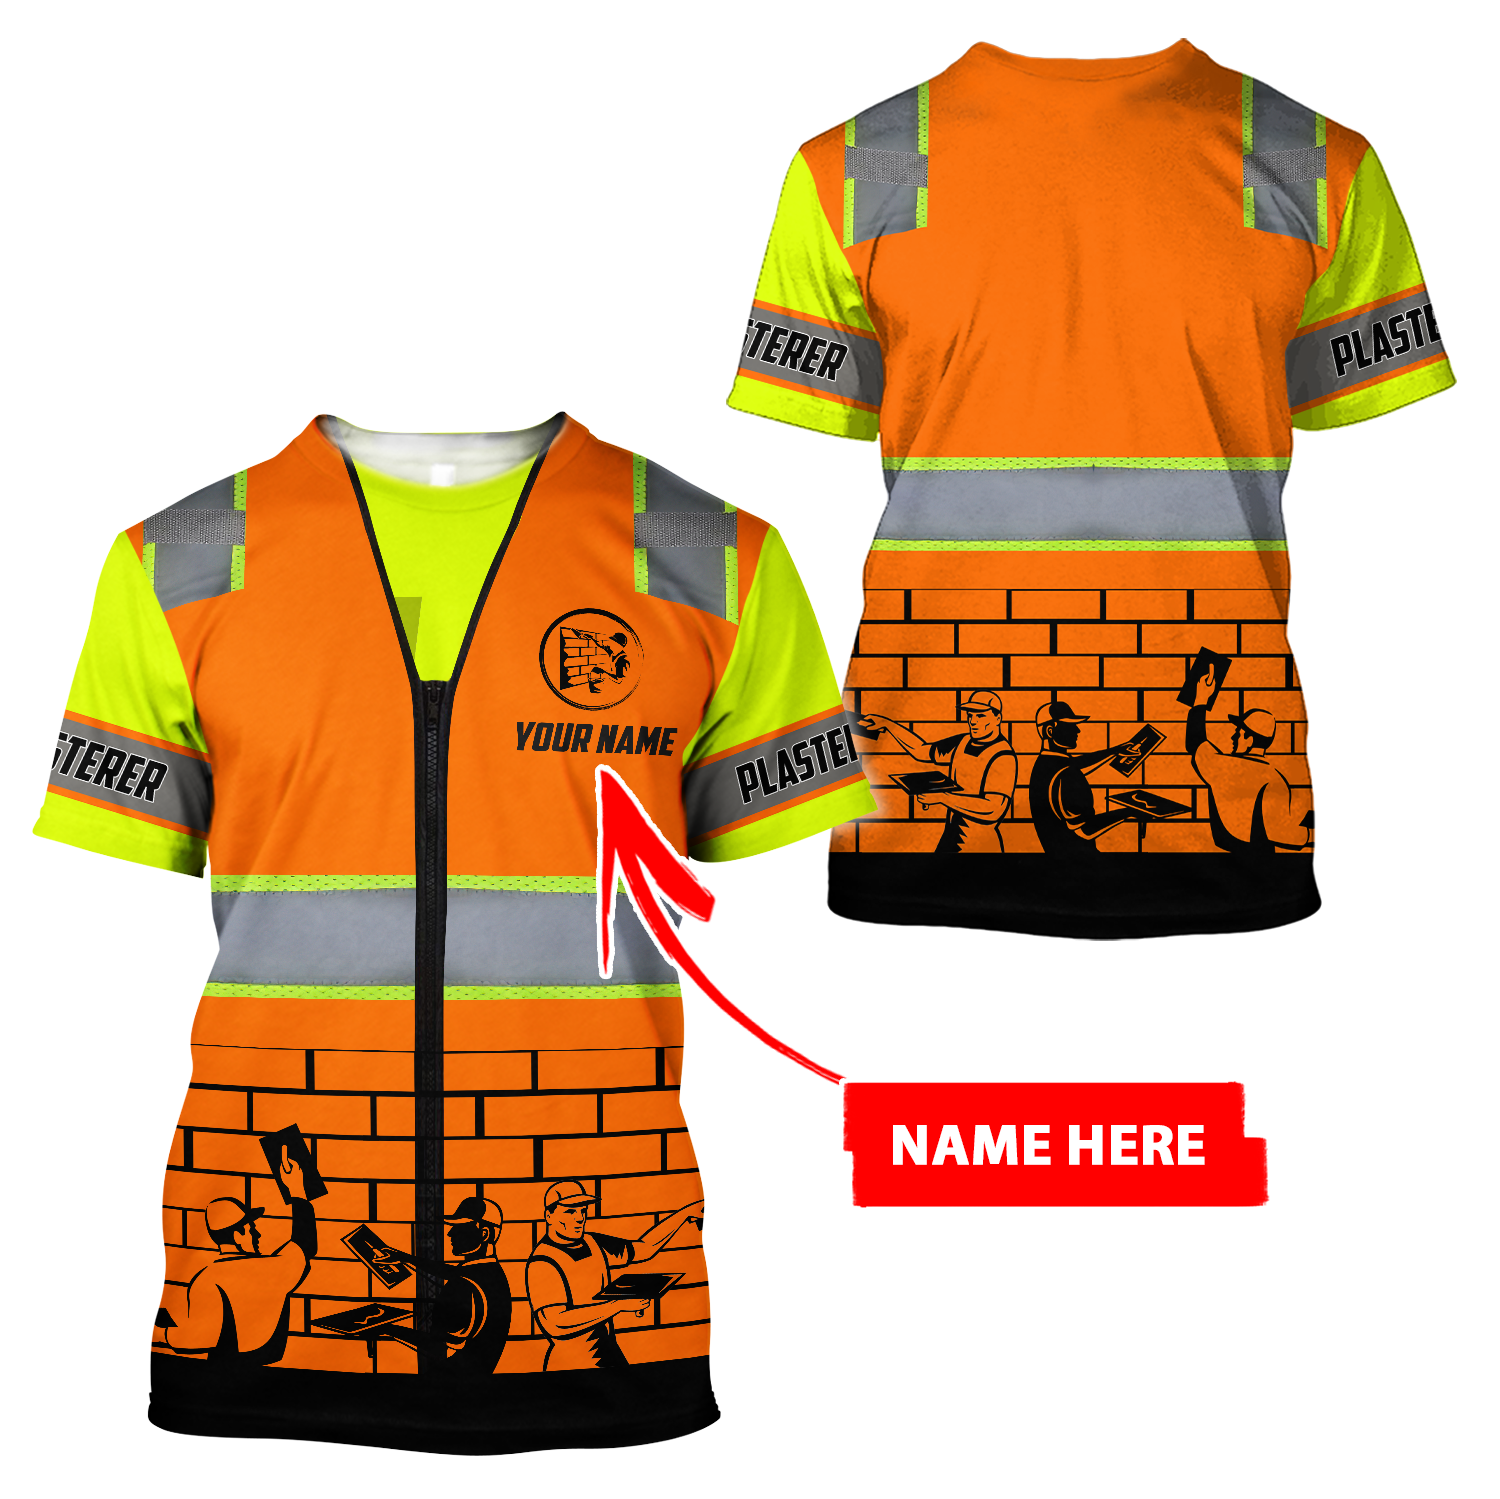 Personalized Name XT Plasterer 3D All Over Printed Clothes PD06032101 - T-shirt / 4XL